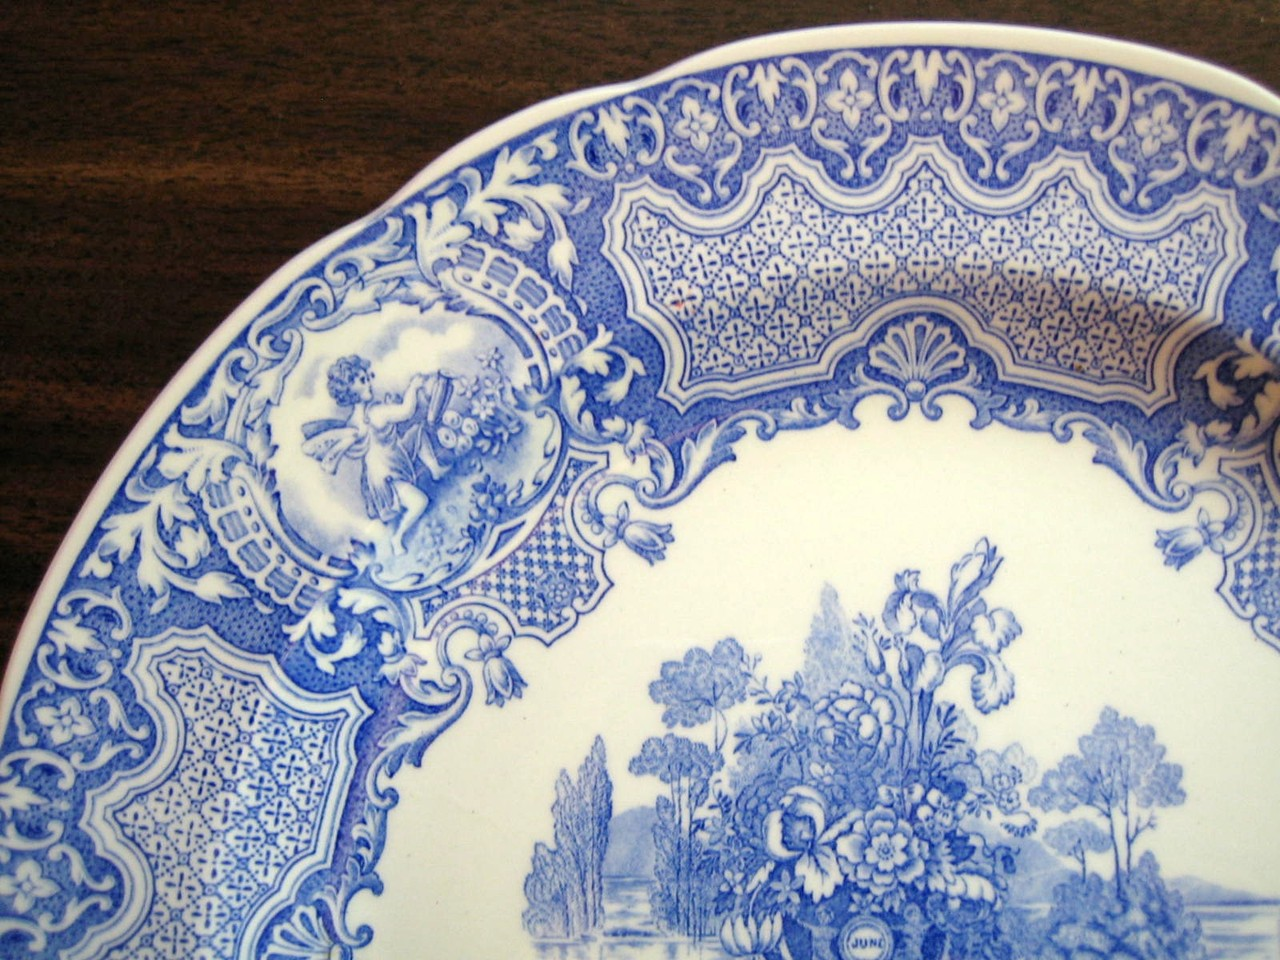 Blue Toile Transferware Cherub Medallions Exotic Garden Plate Edge www.DecorativeDishes.net